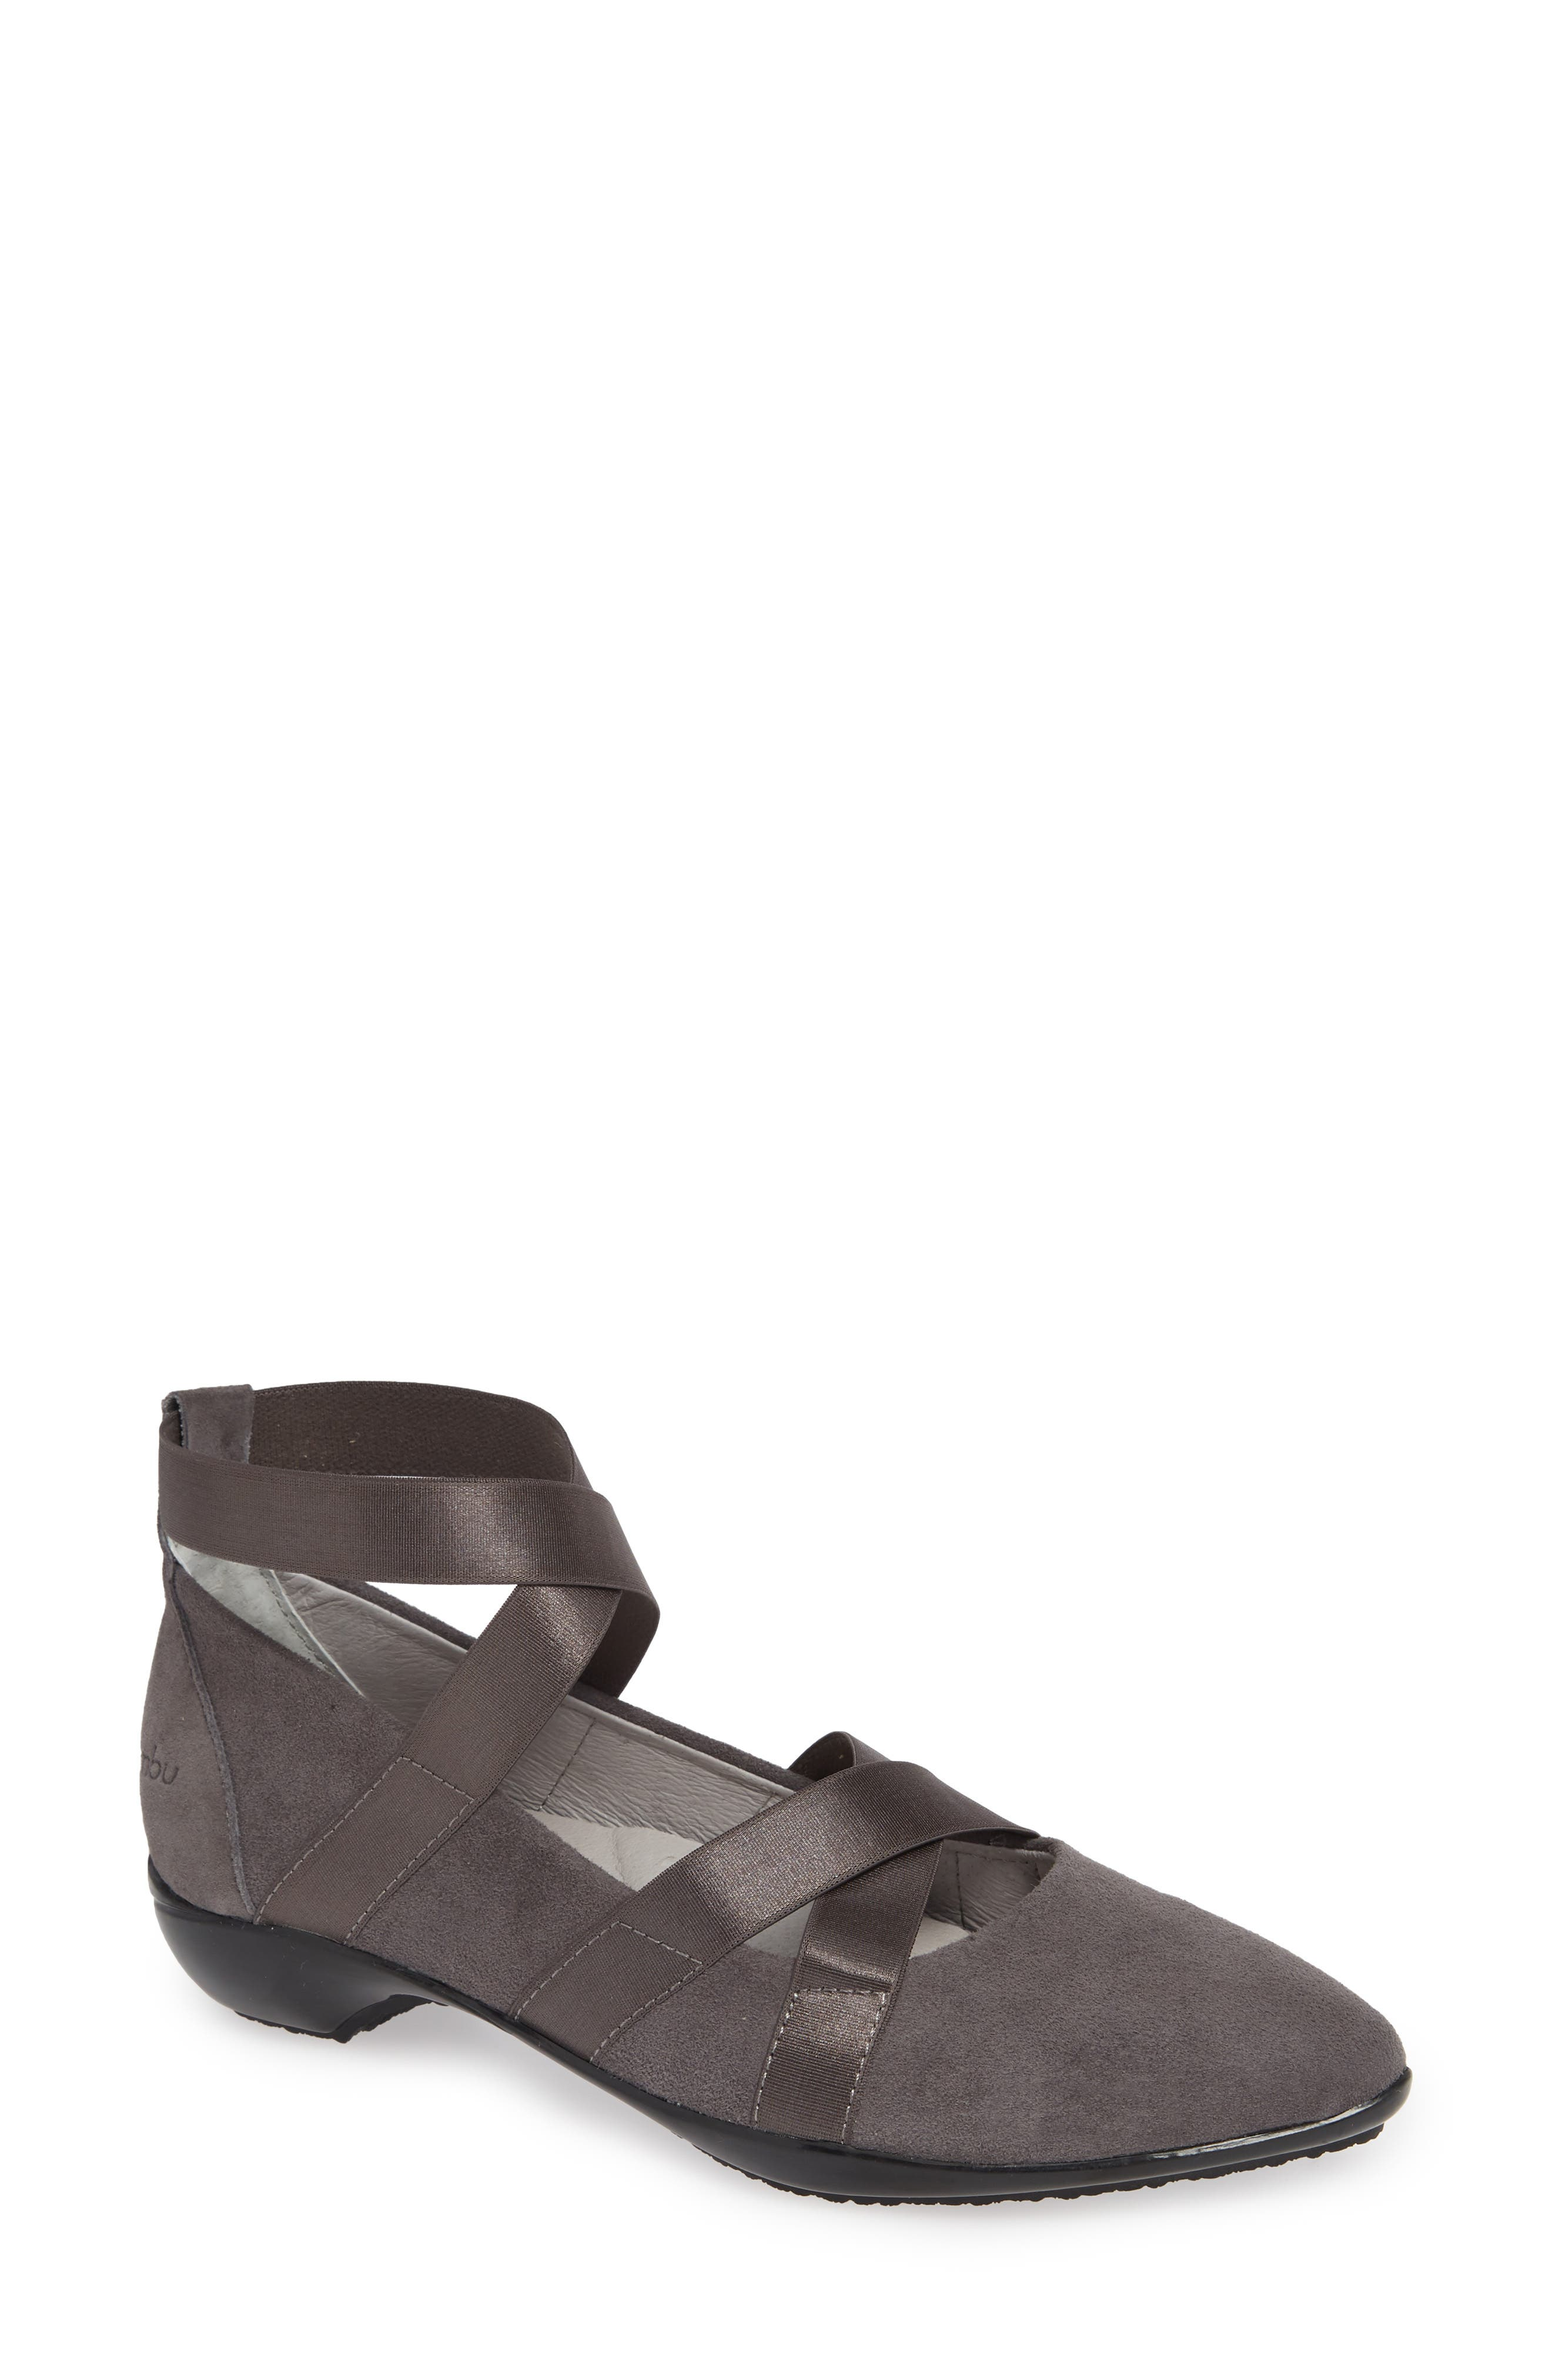 Rumson Flat,                             Main thumbnail 1, color,                             CHARCOAL SUEDE